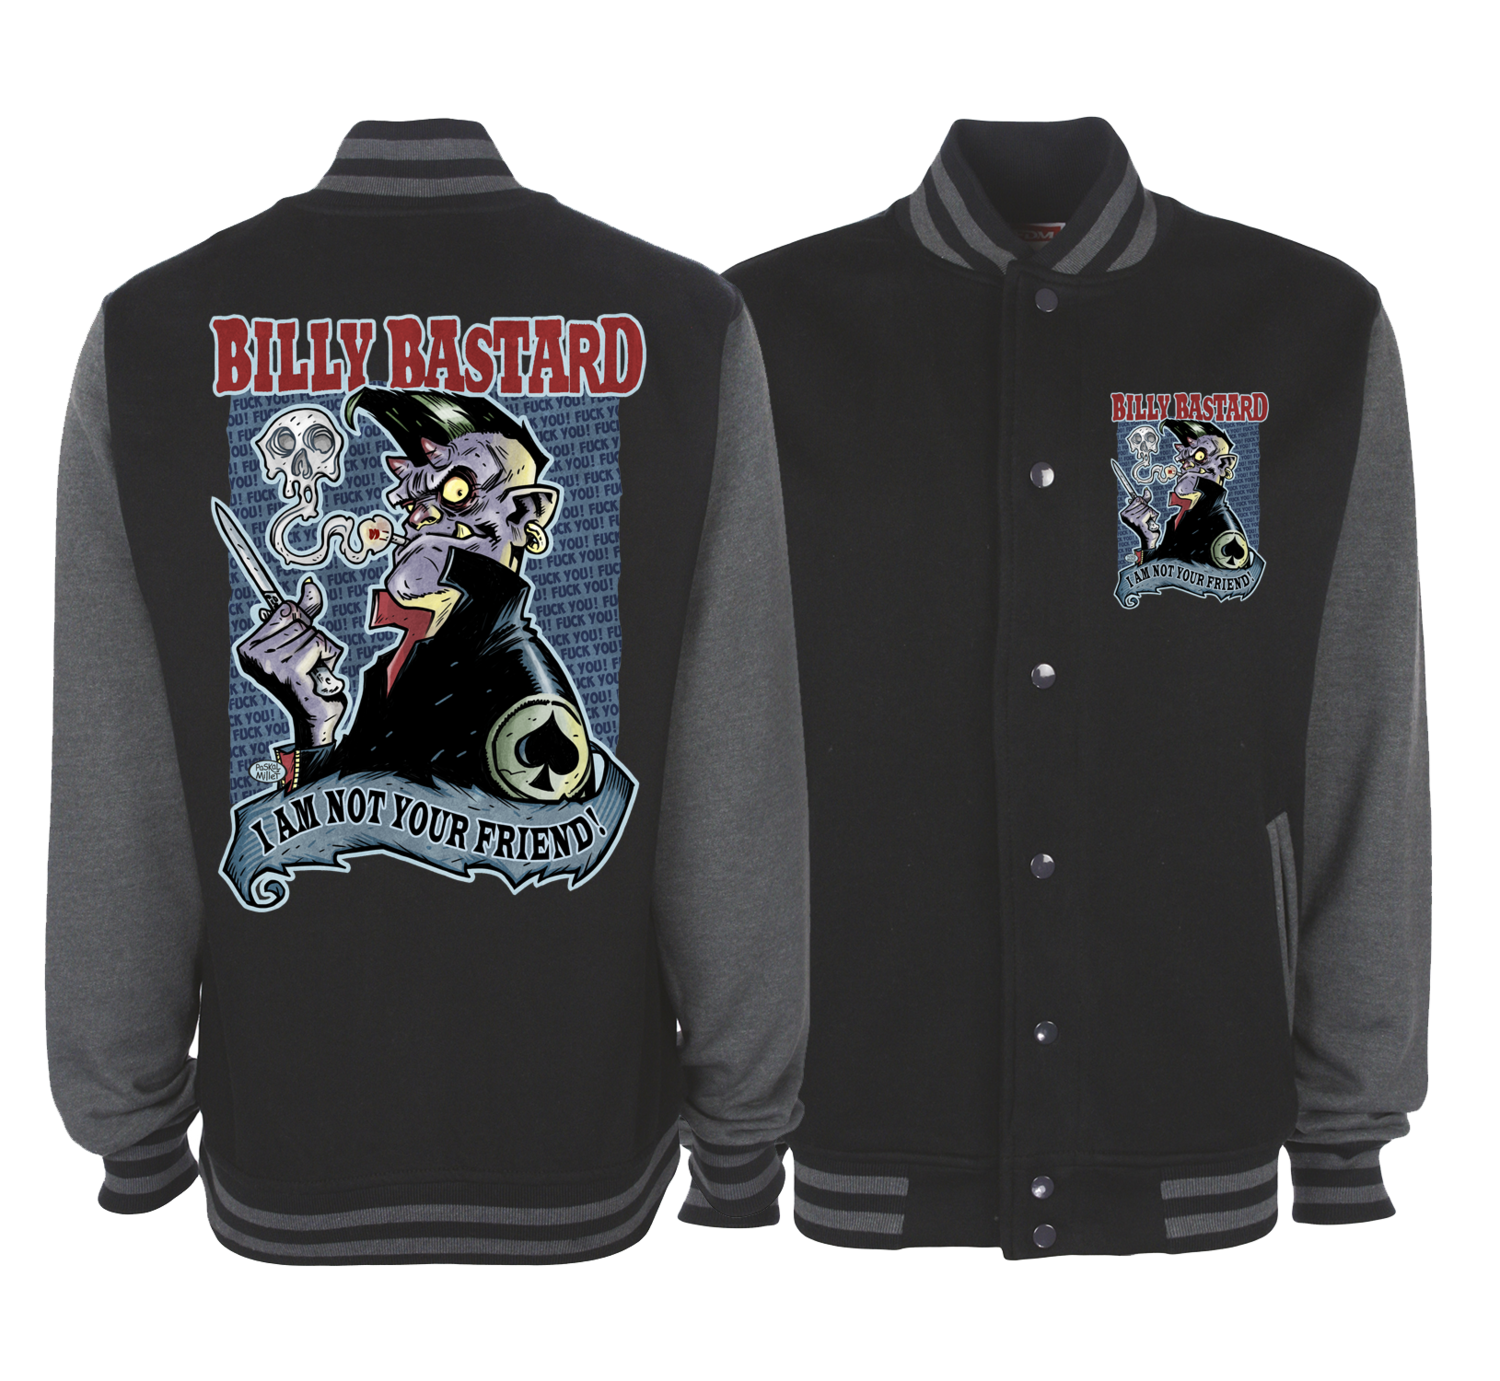 BILLY BASTARD VARSITY JACKET UNISEX BY PASKAL